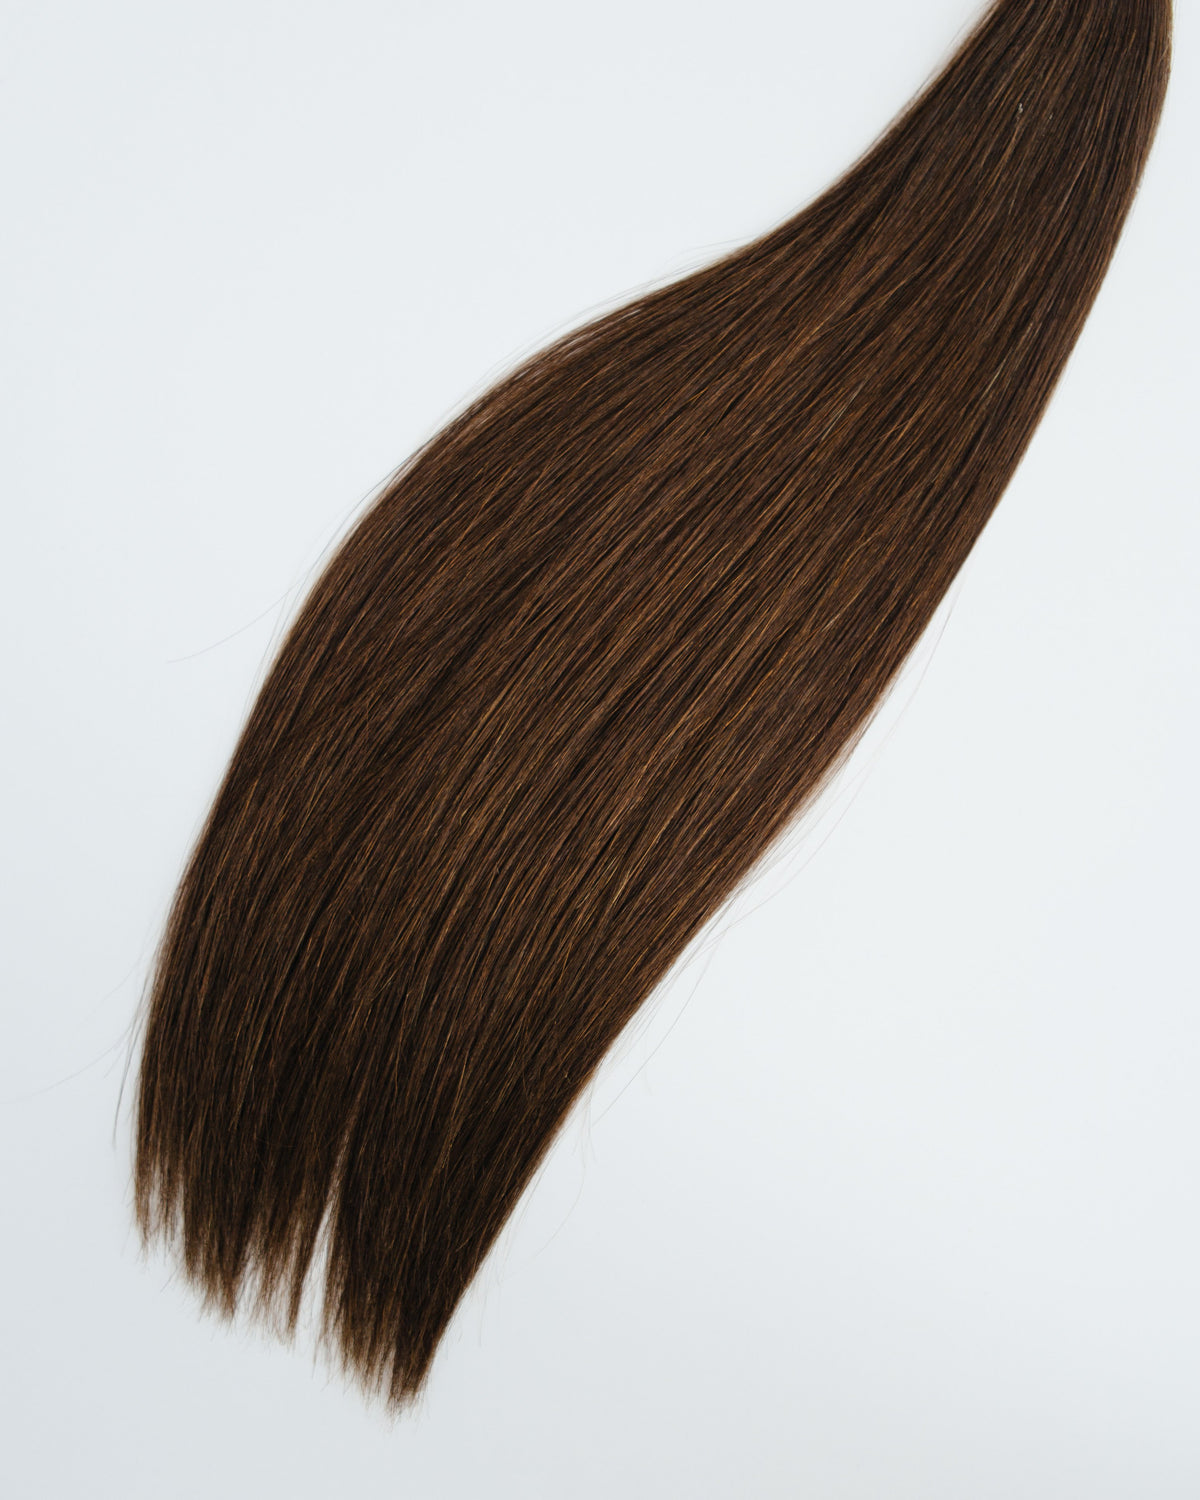 Laced Hair Machine Sewn Weft Extensions #2 (Chocolate)